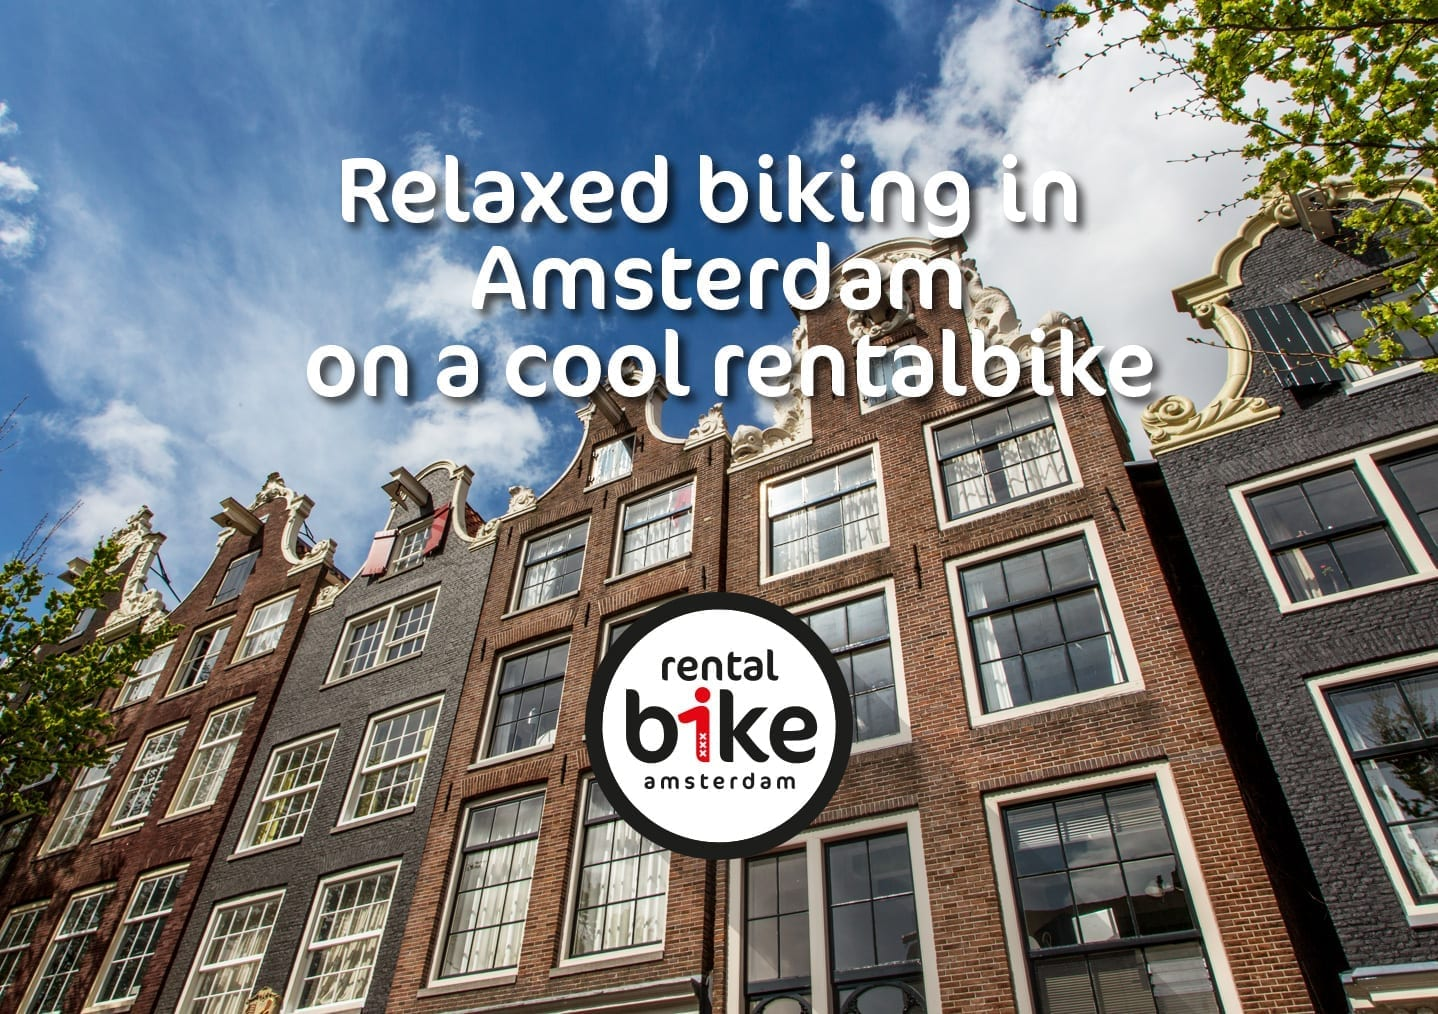 Relaxed biking in Amsterdam on a cool rentalbike